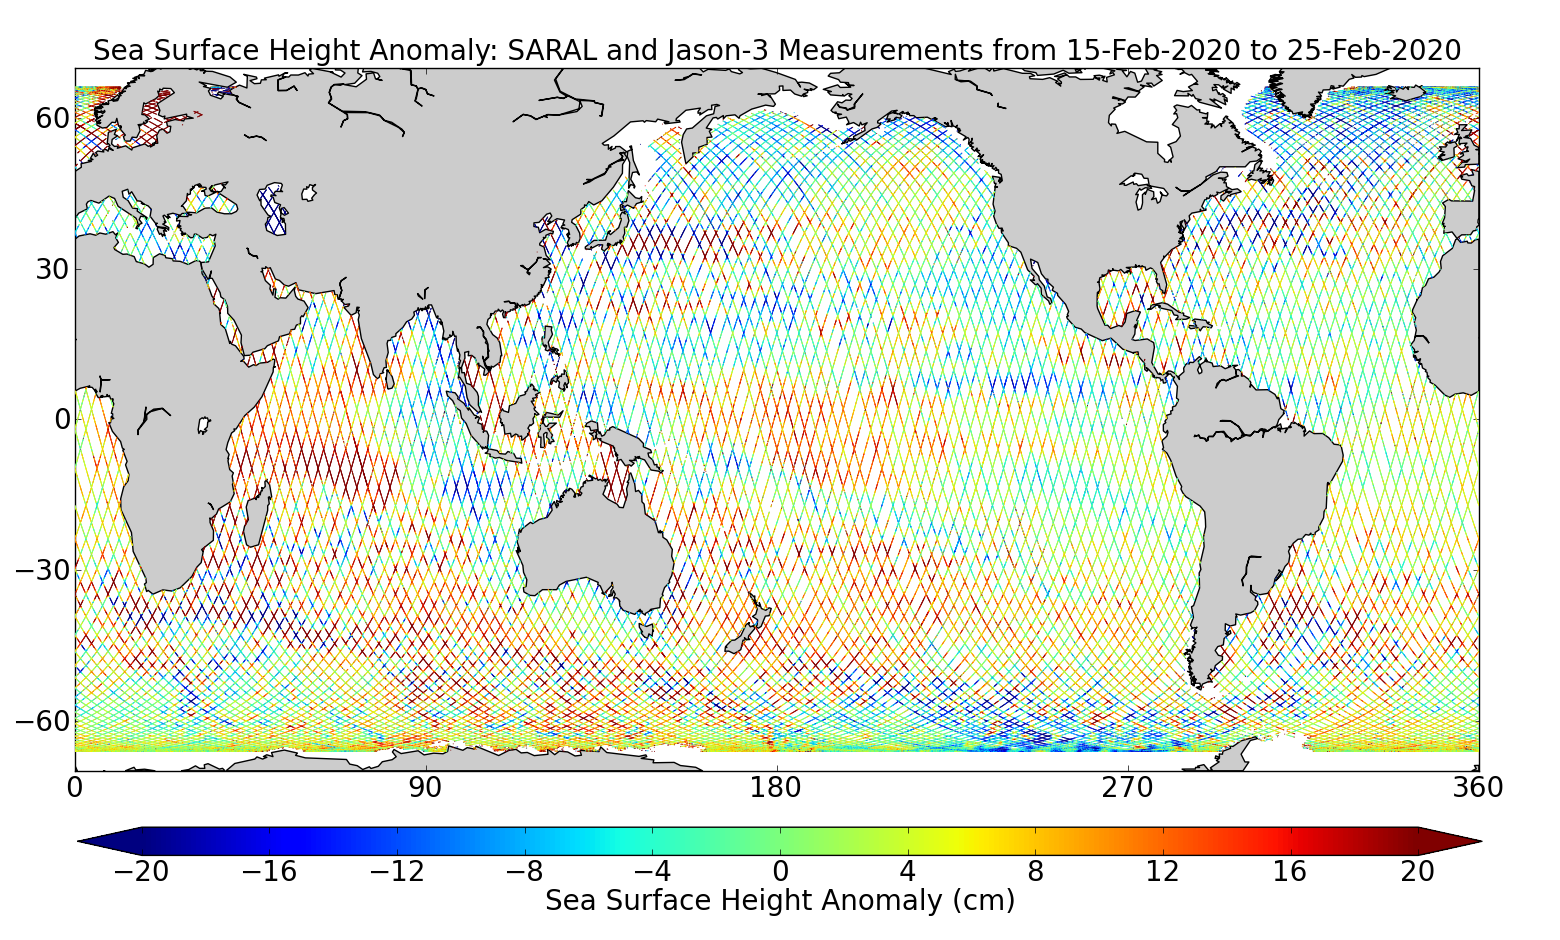 Sea Surface Height Anomaly: SARAL and Jason-3 Measurements from 15-Feb-2020 to 25-Feb-2020